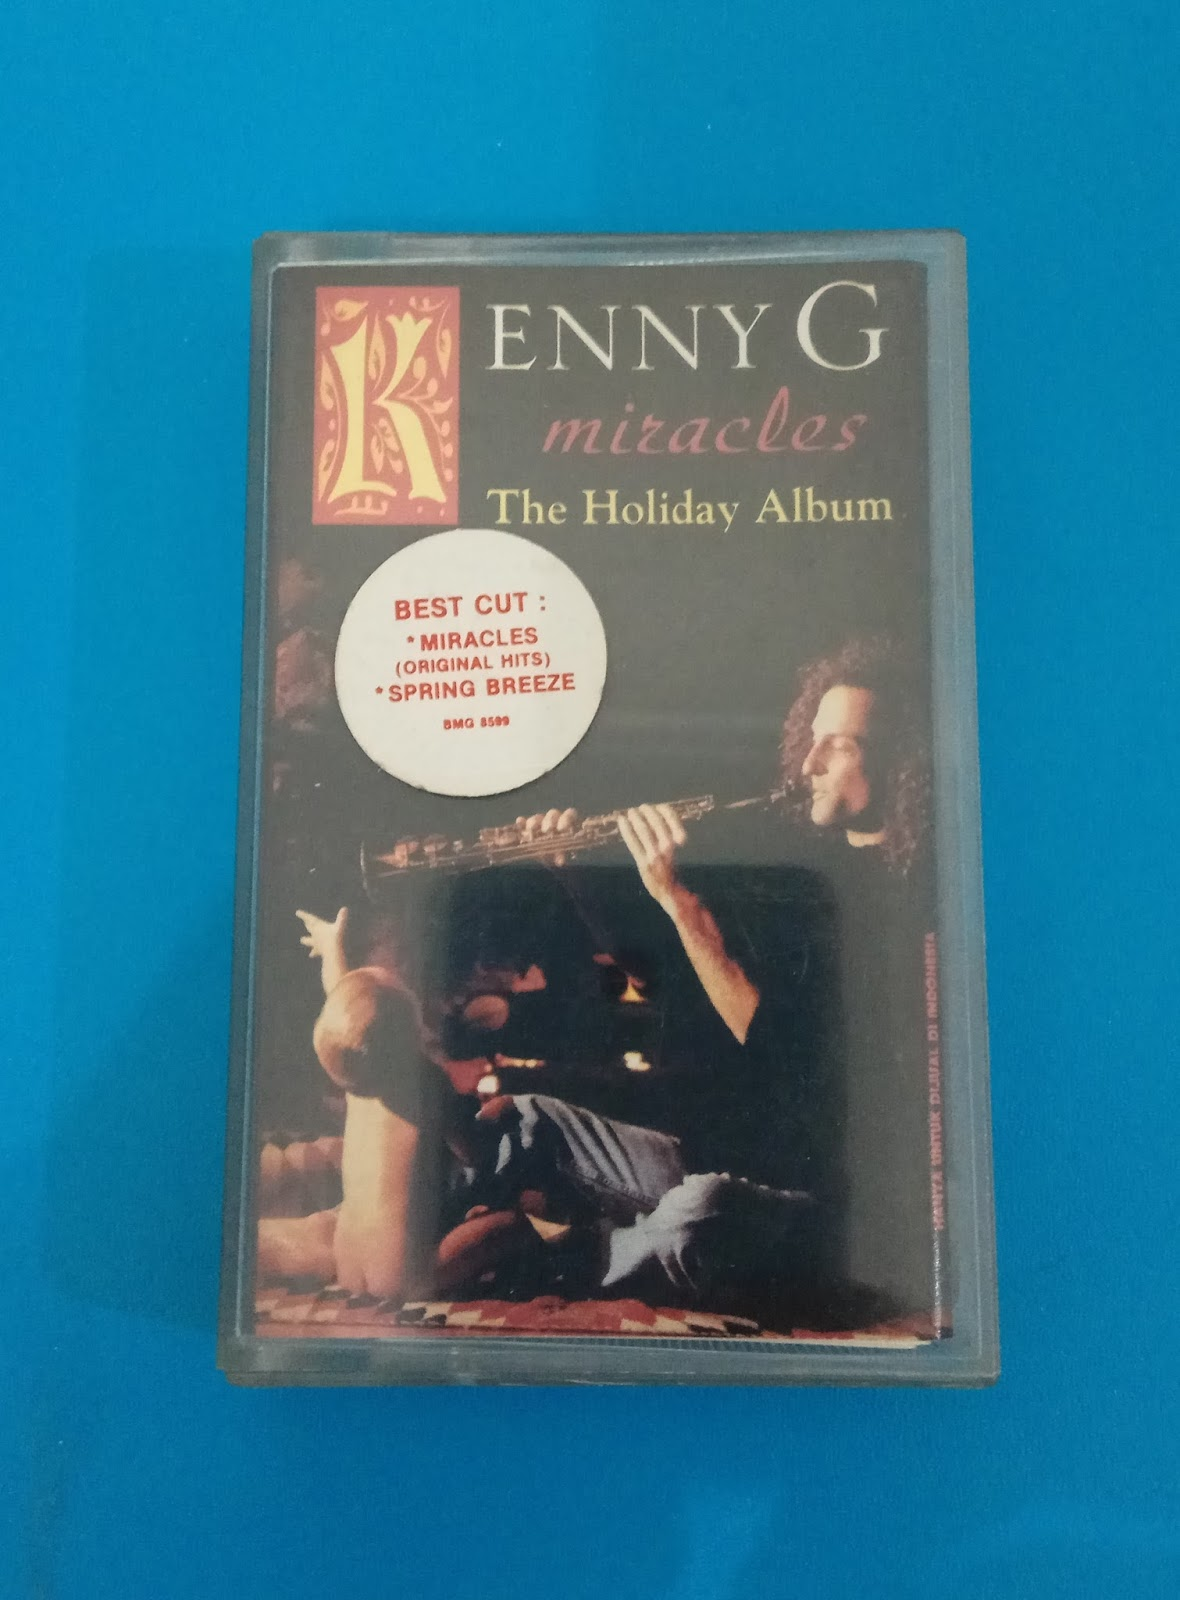 Old Music Cassette: Miracles by Kenny G (The Holiday Album - 1994)